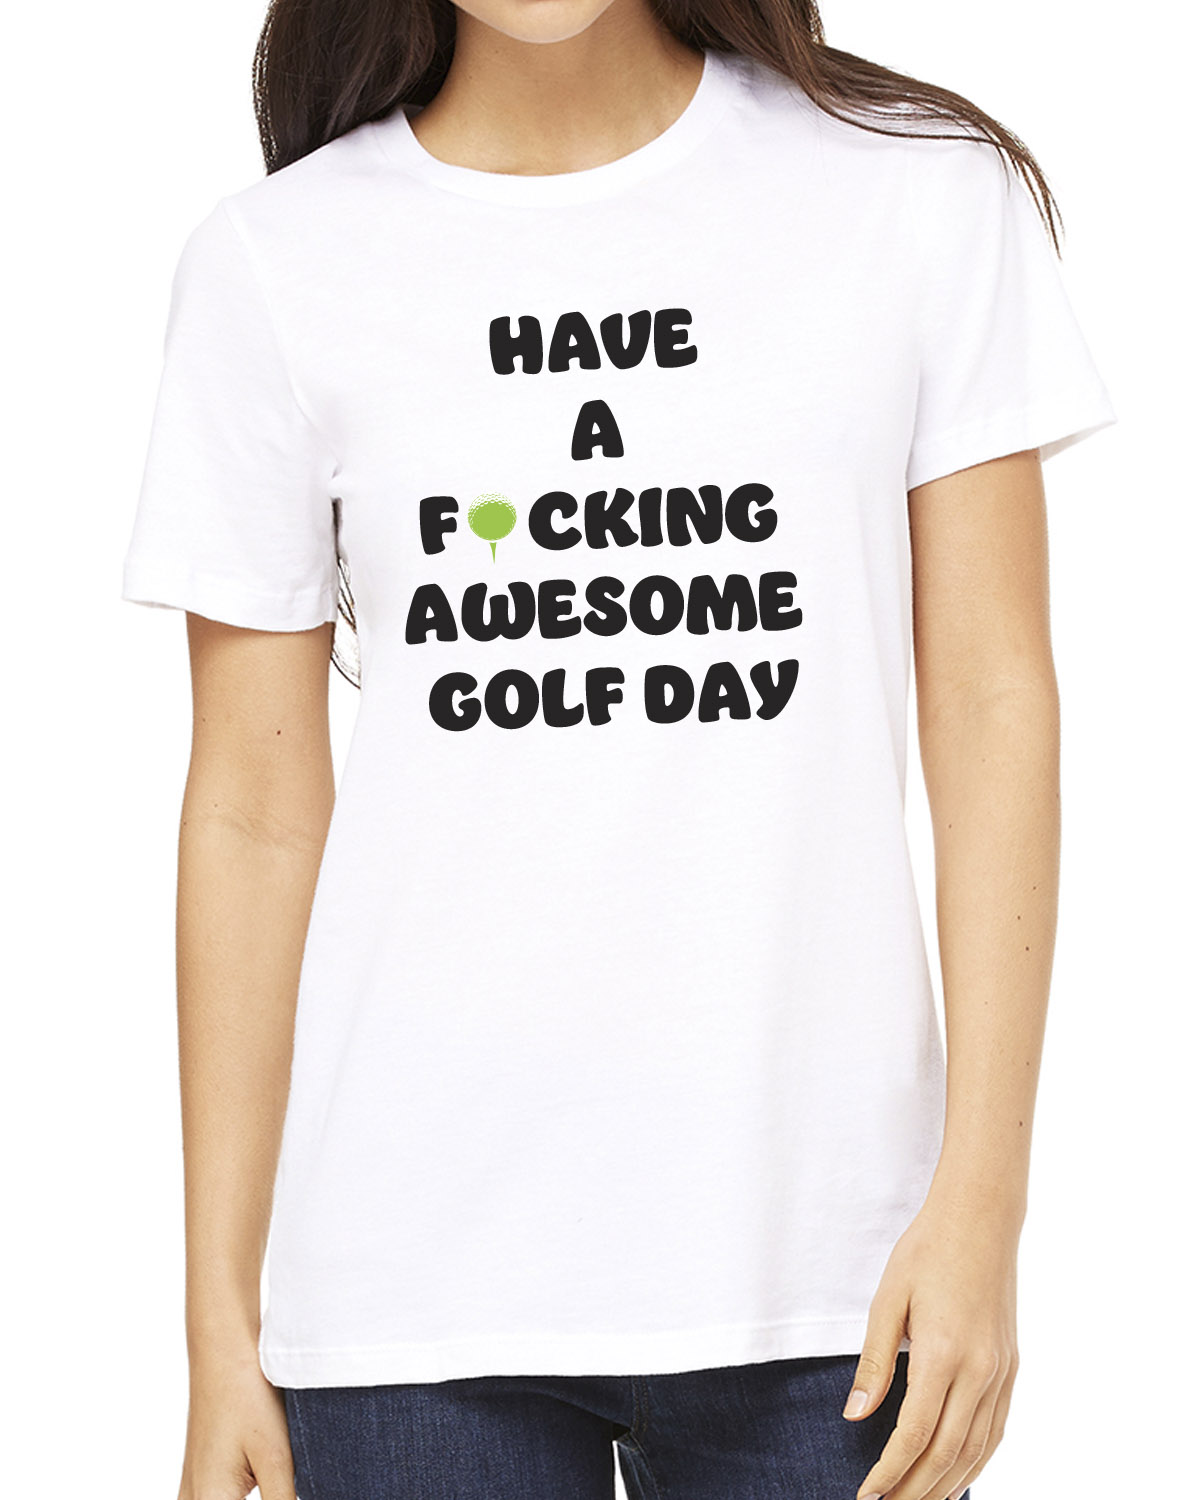 Women's Have a F*cking Awesome Golf Day T-shirt (white)